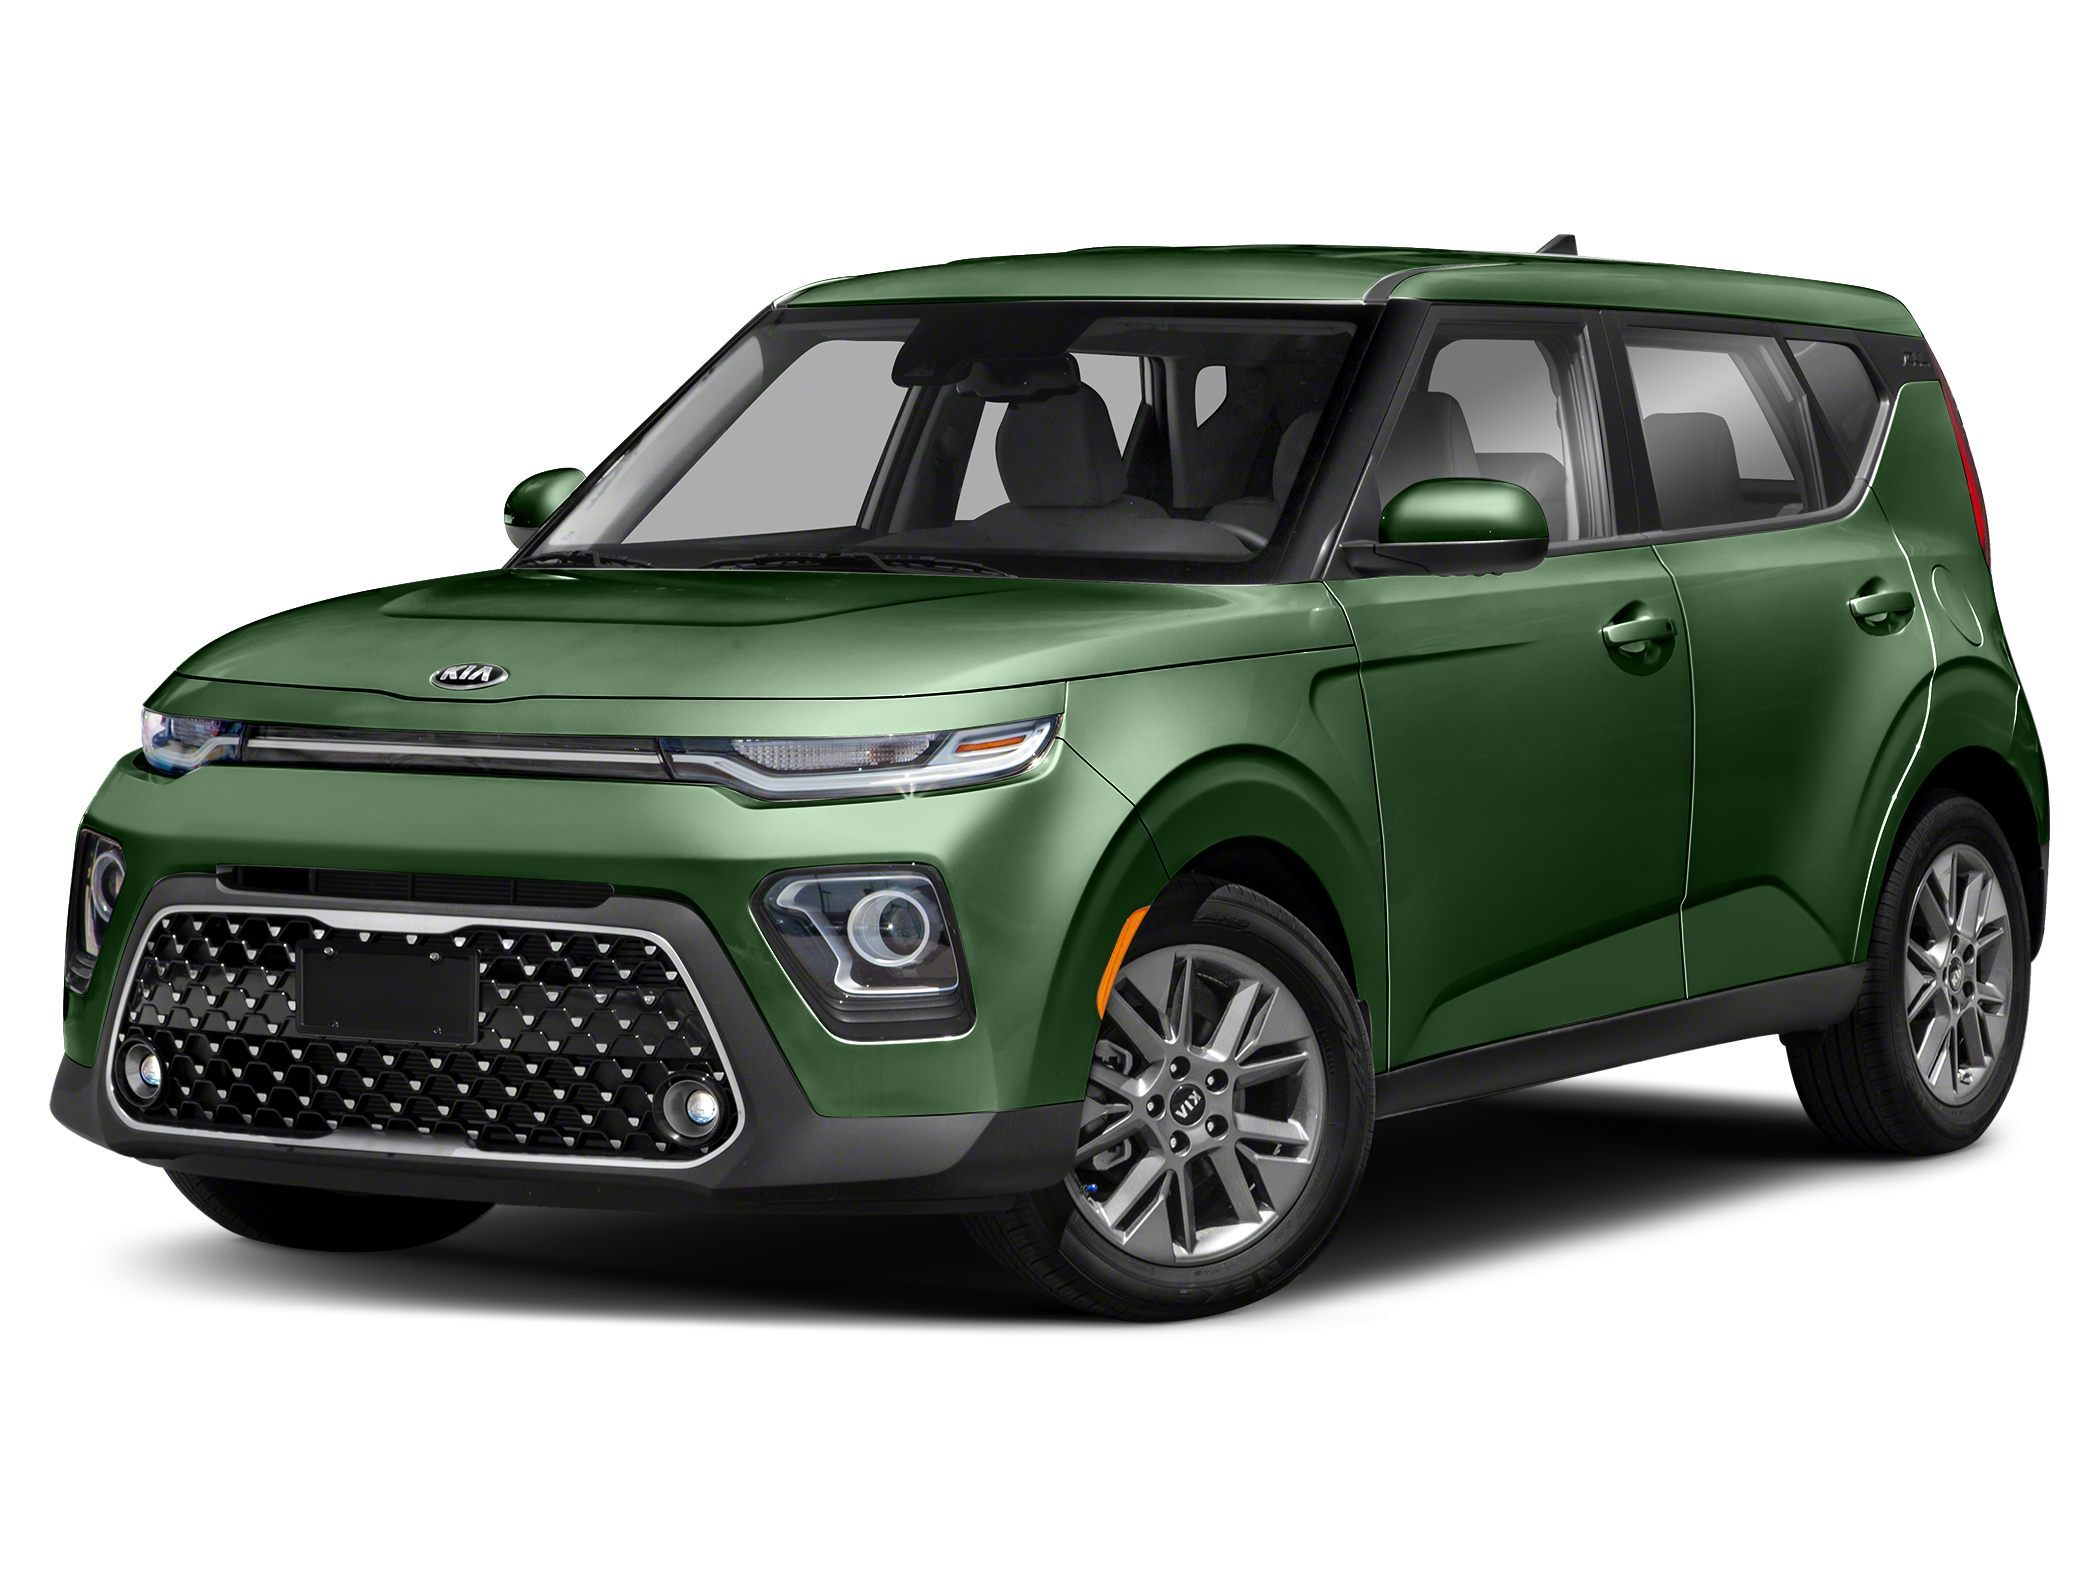 2021 Kia Soul Release Date and Concept